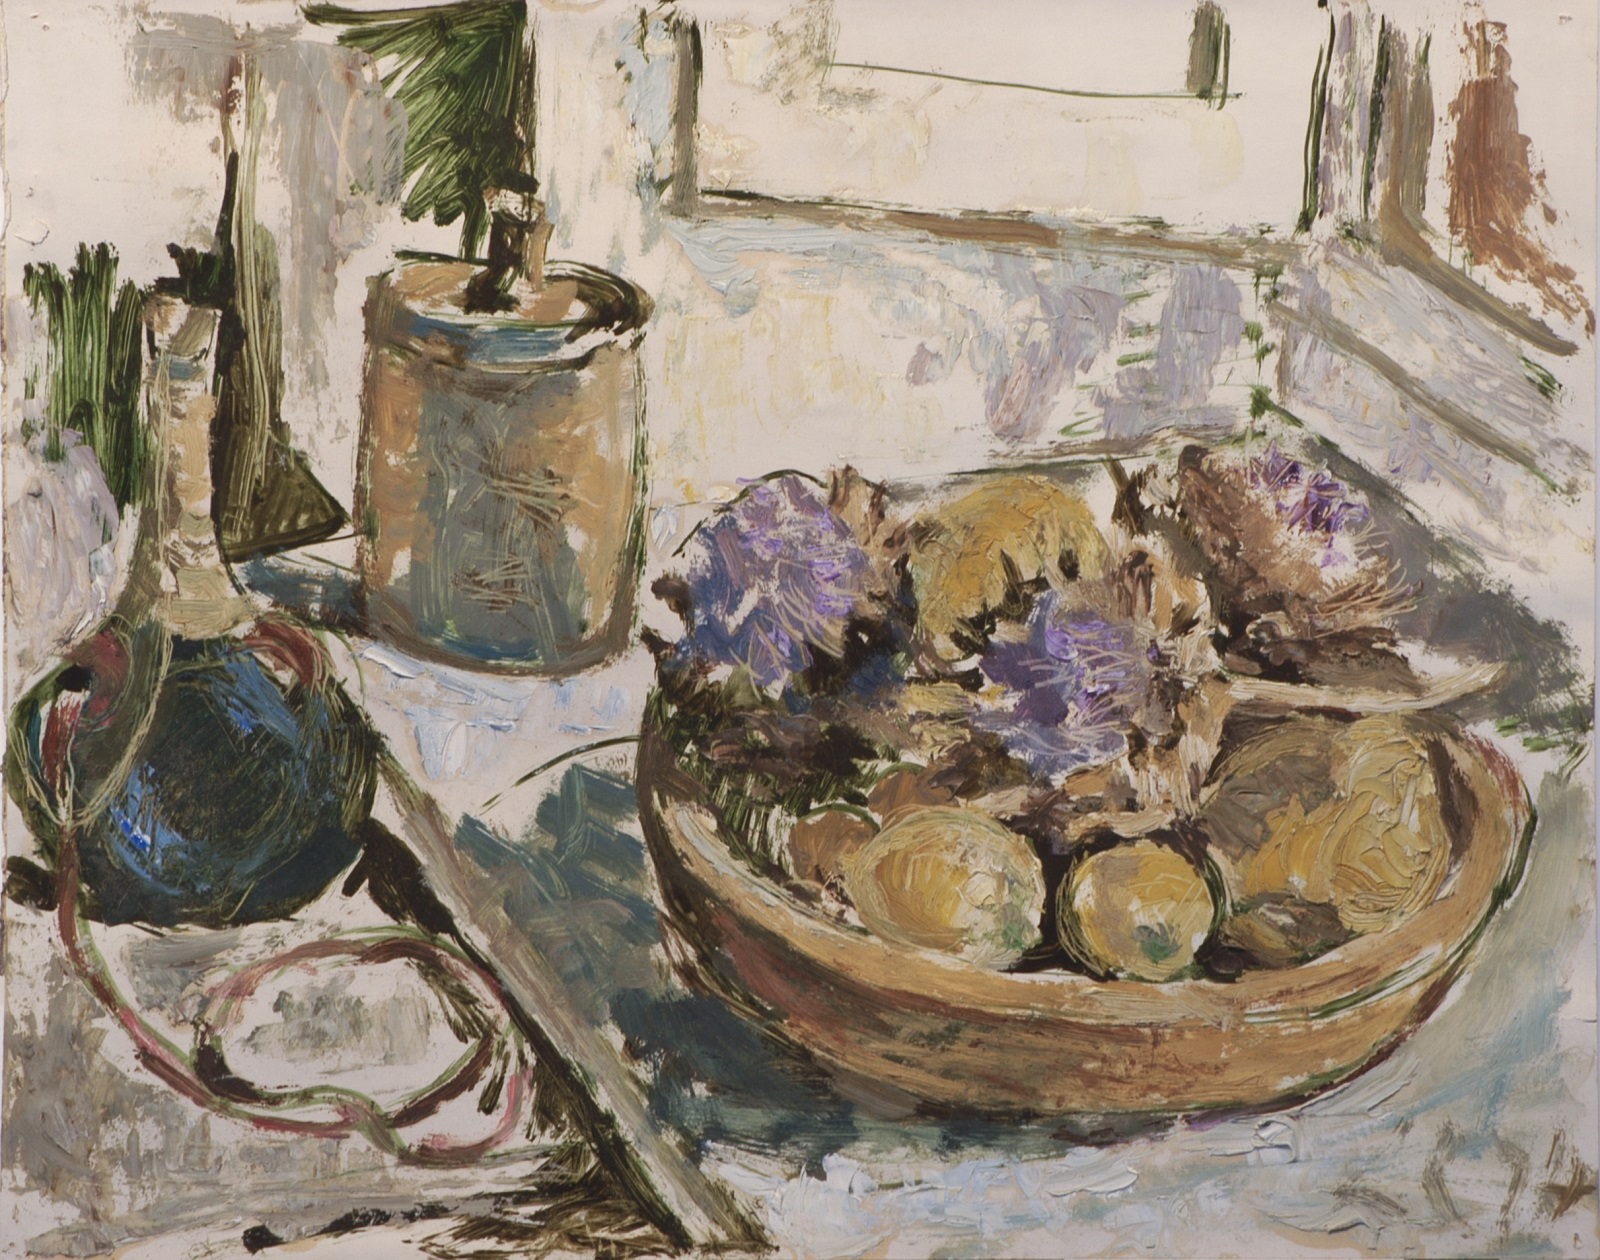 Costa's Flowers, artichokes and eggs, 1974